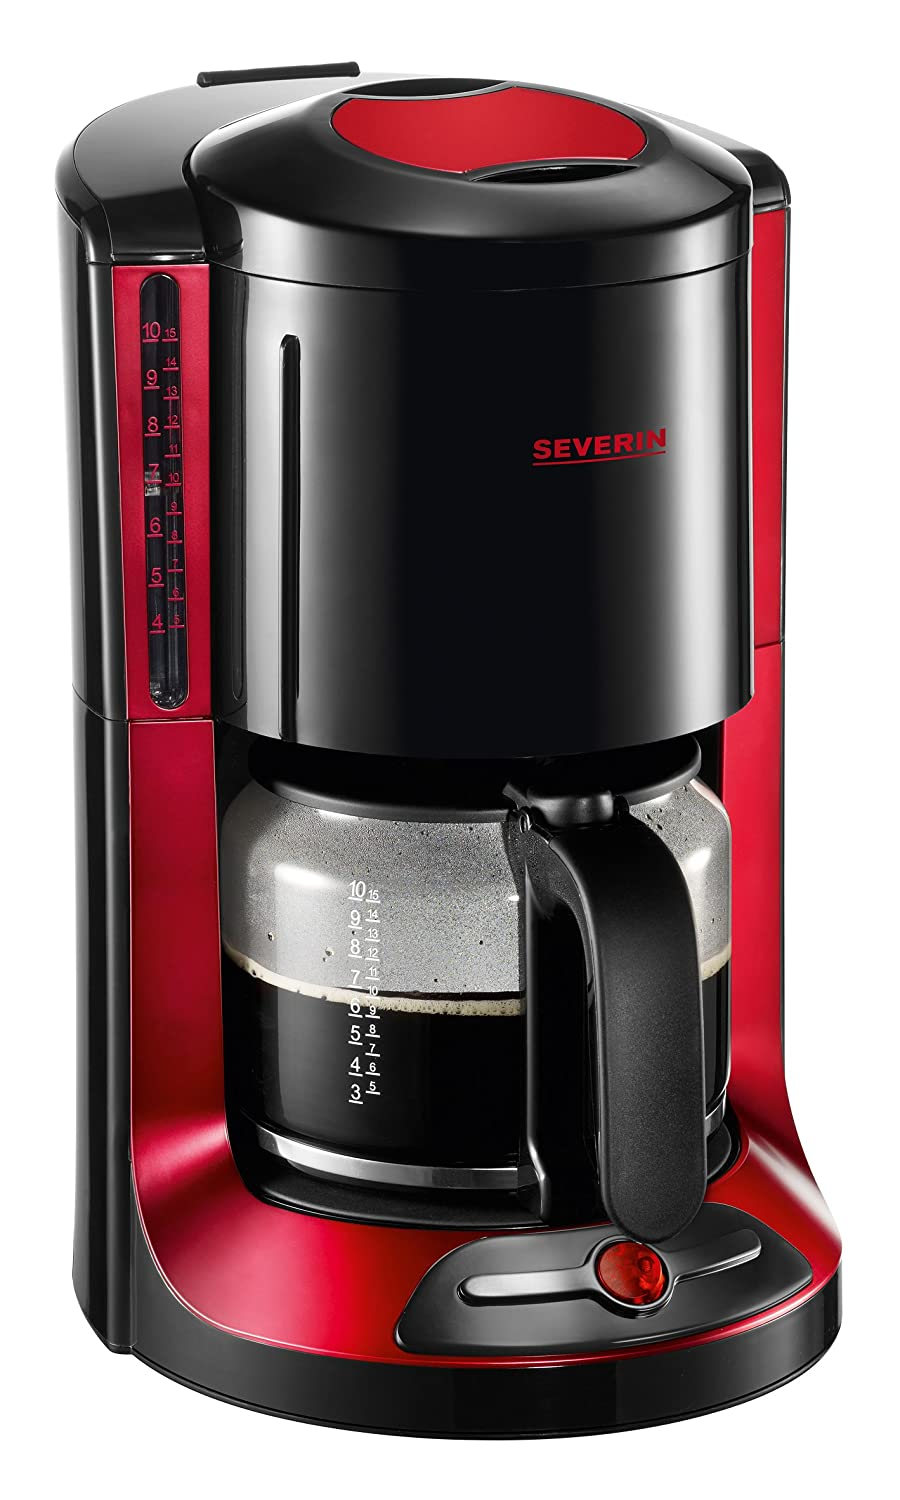 Severin Select Coffee Maker 10C KA 4177 Cafetera, 1000 W, Negro y ...